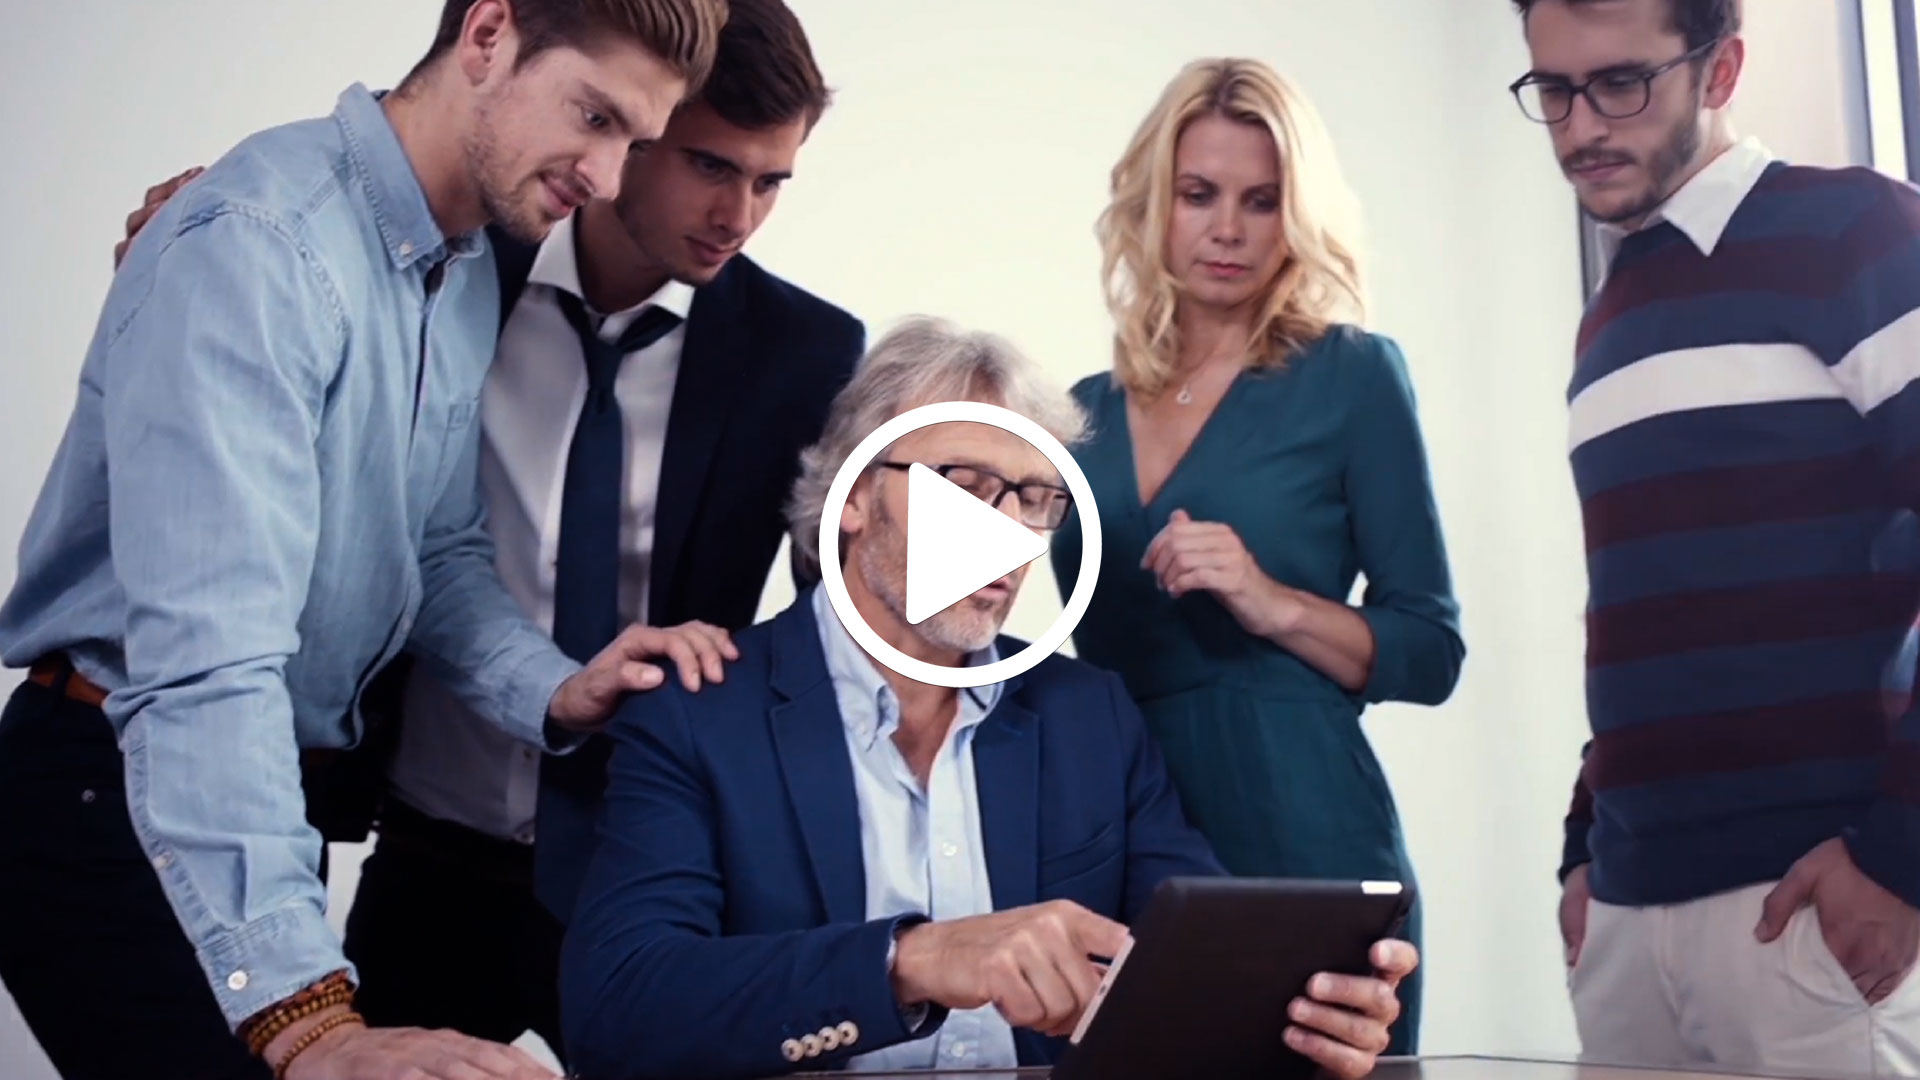 Watch our careers video for available job opening Site Manager in nationwide, USA